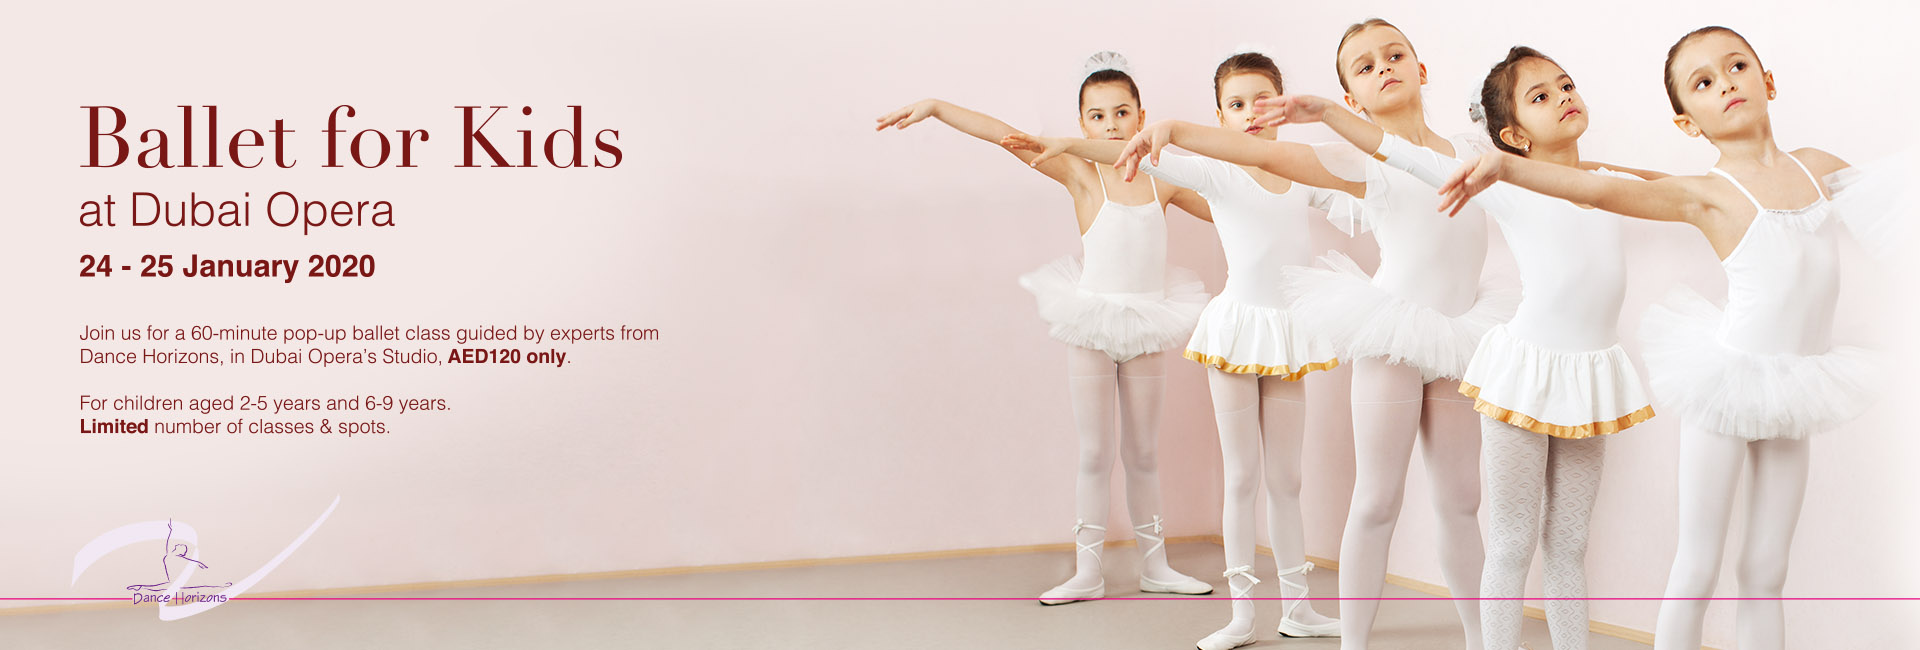 Ballet for Kids on Jan 24th – 25th at Dubai Opera